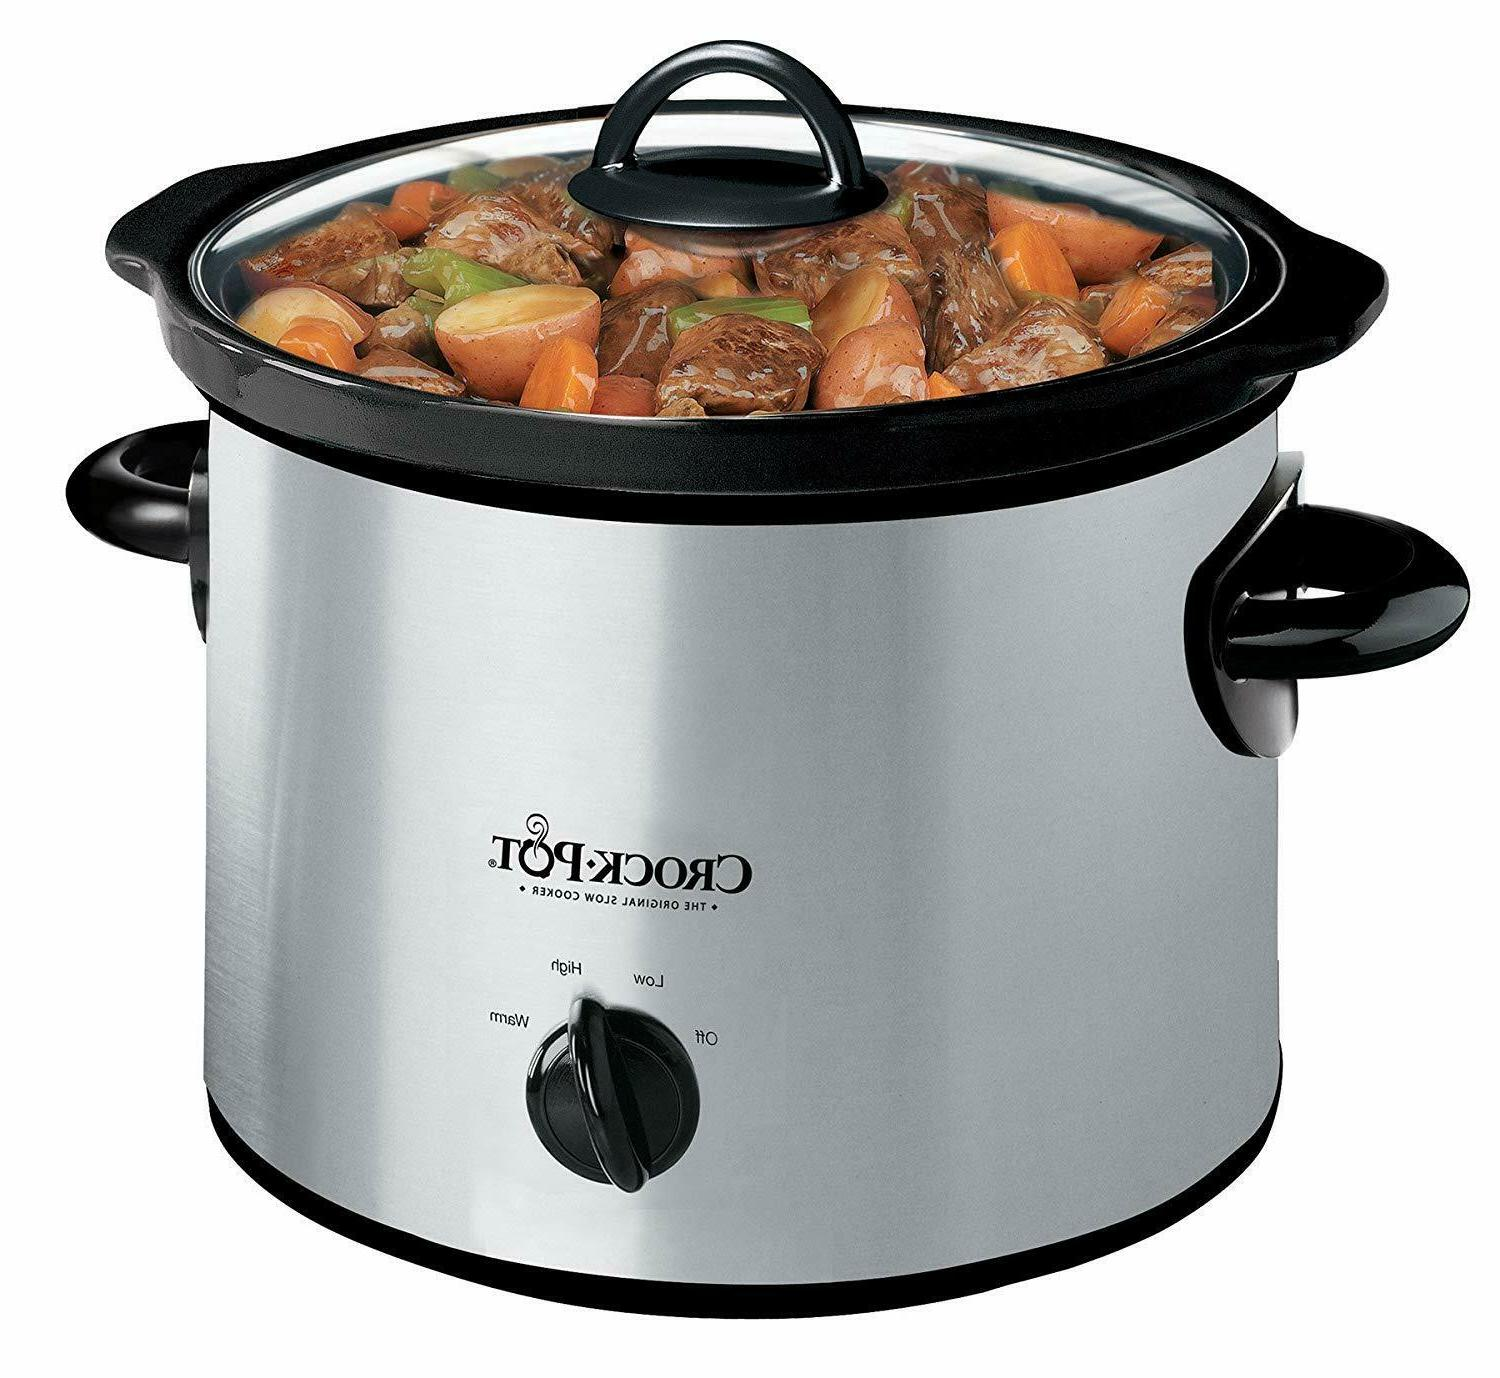 3 quart manual slow cooker dishwasher safe